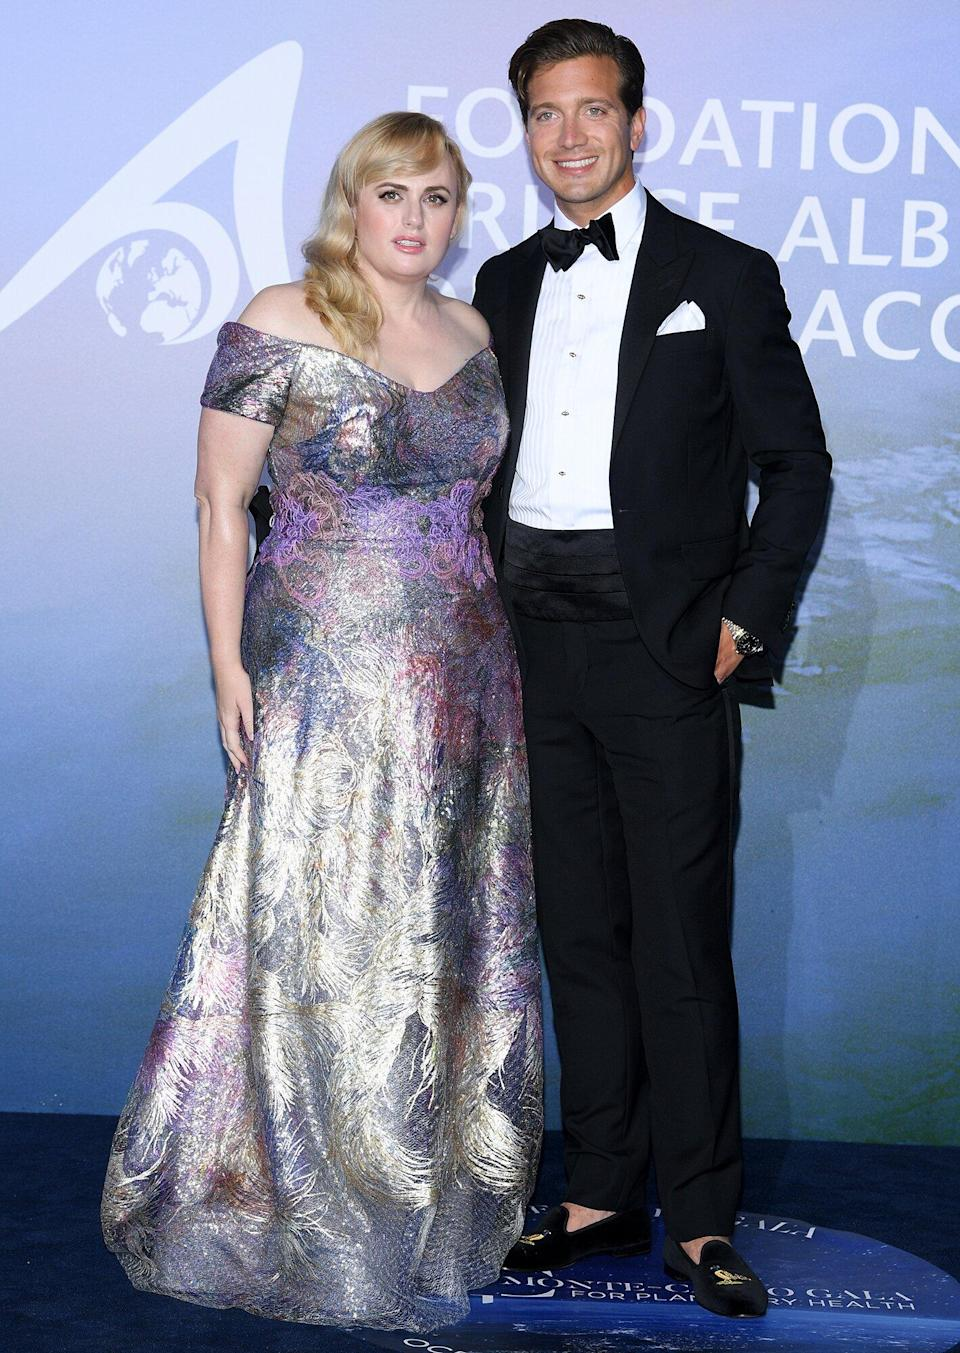 Rebel Wilson Is Having 'Even More Fun With Fashion' Thanks to Her Weight Loss Journey: Source